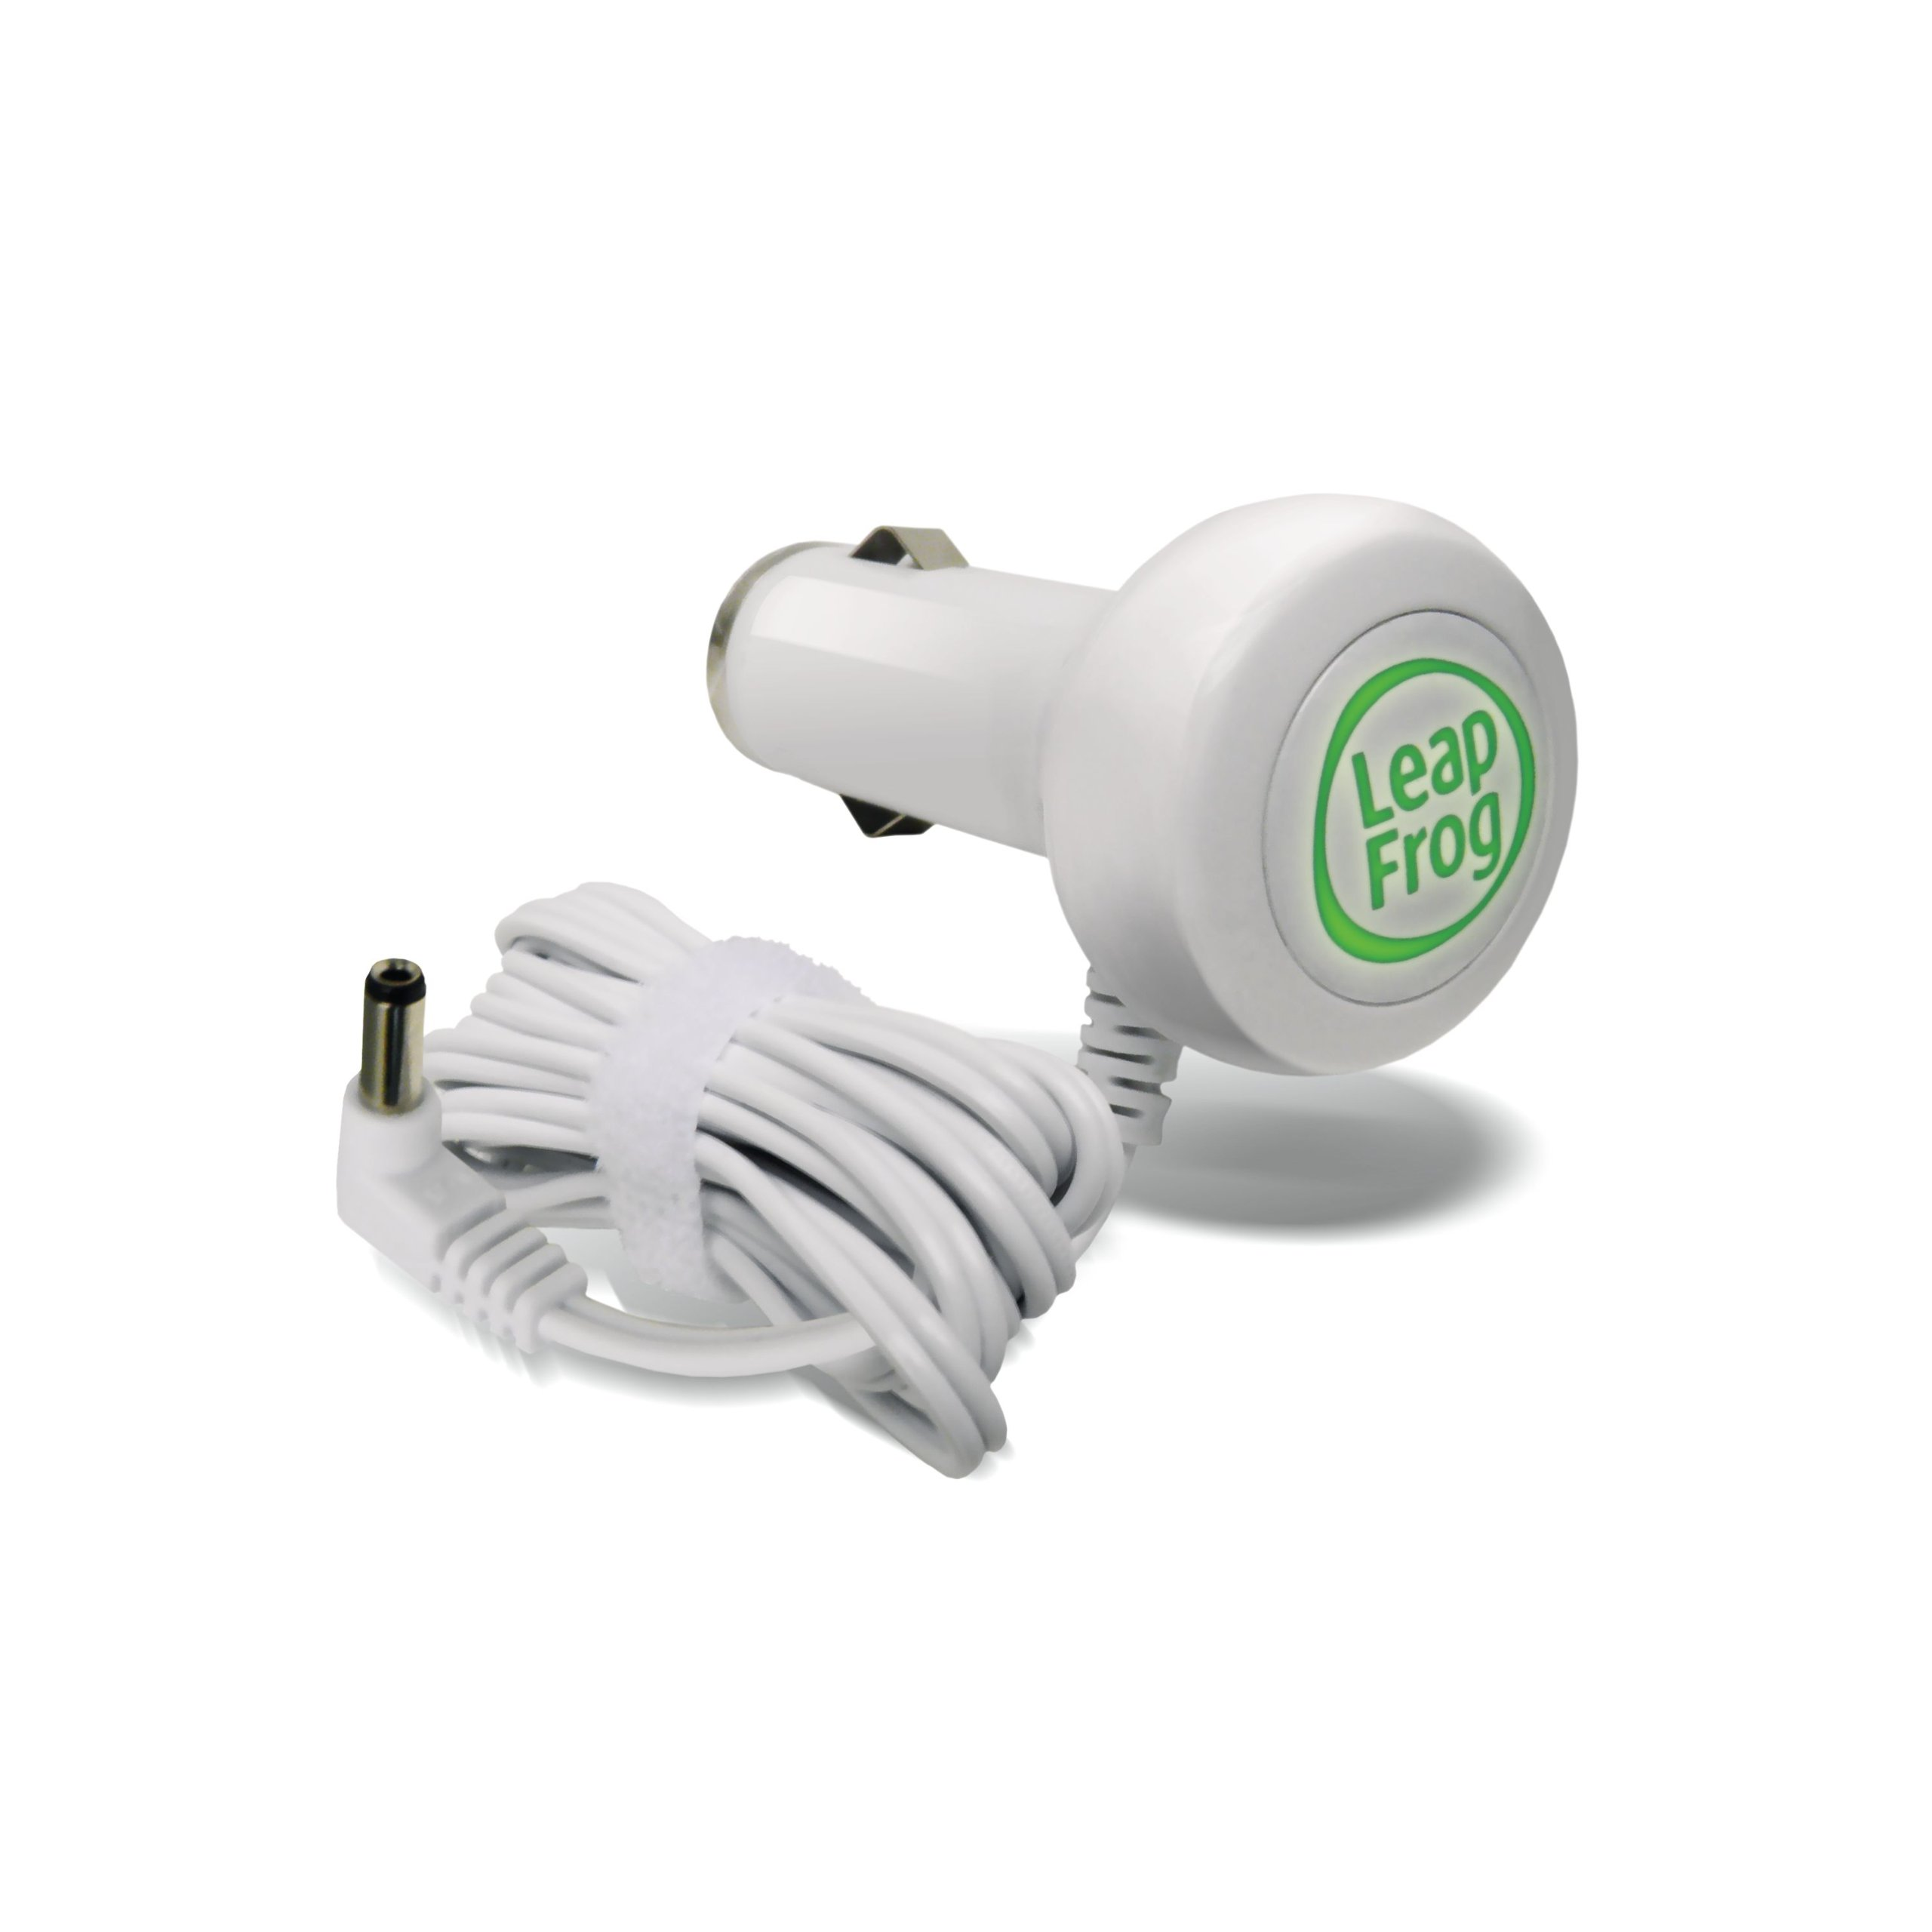 LeapFrog Car Adapter (Works with all LeapPad2 and LeapPad1 Tablets, LeapsterGS, and Leapster2) by LeapFrog (Image #1)